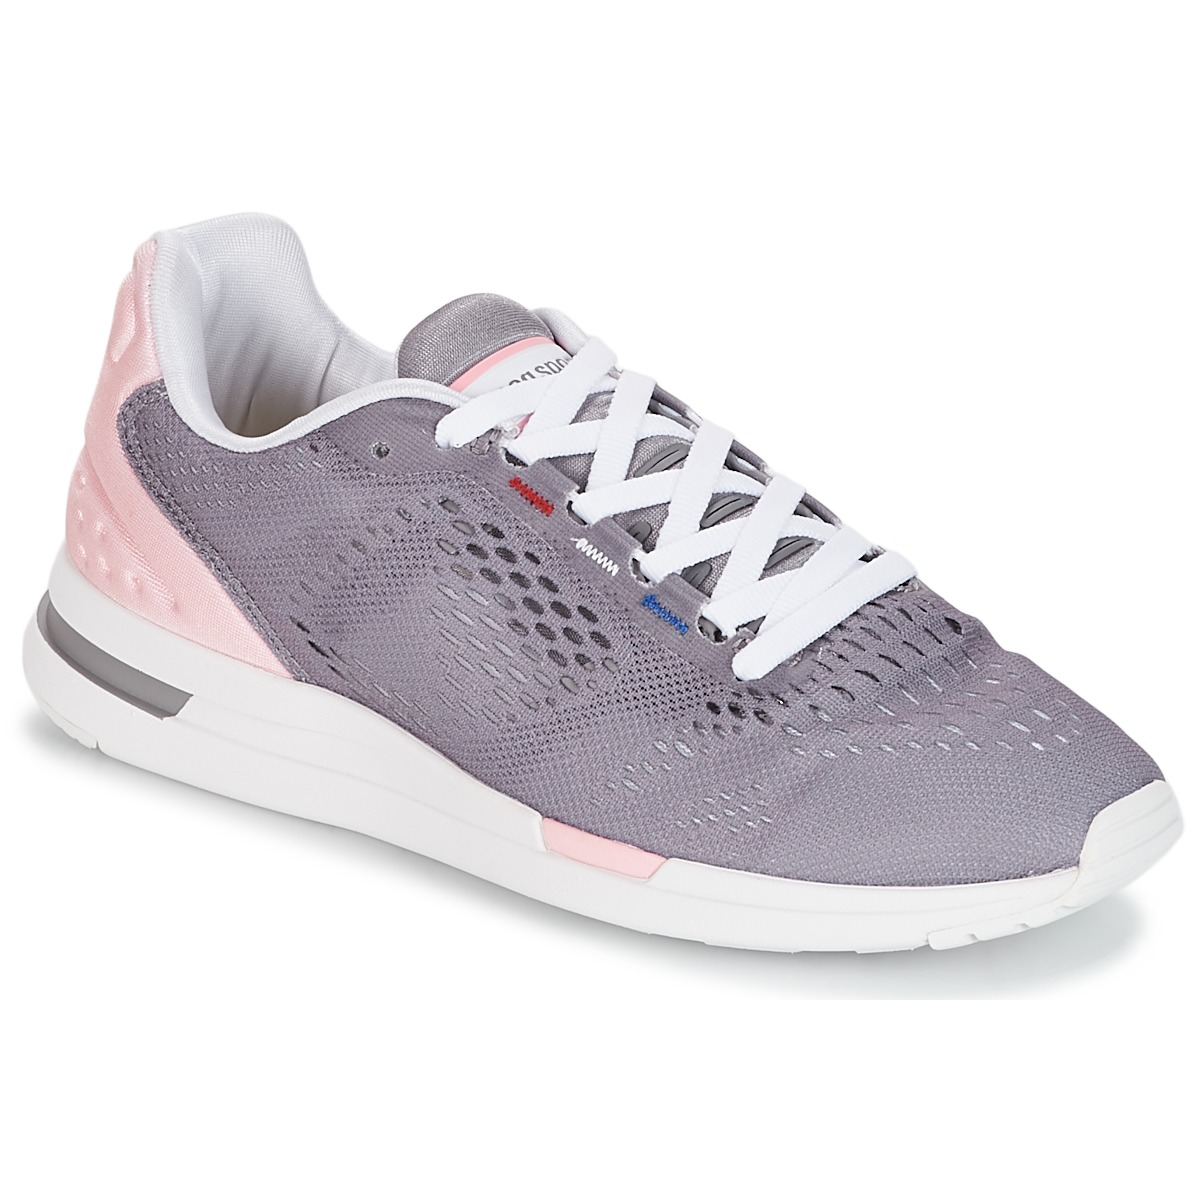 finest selection c80c8 ccb19 Le Coq Sportif LCS R PRO W ENGINEERED MESH